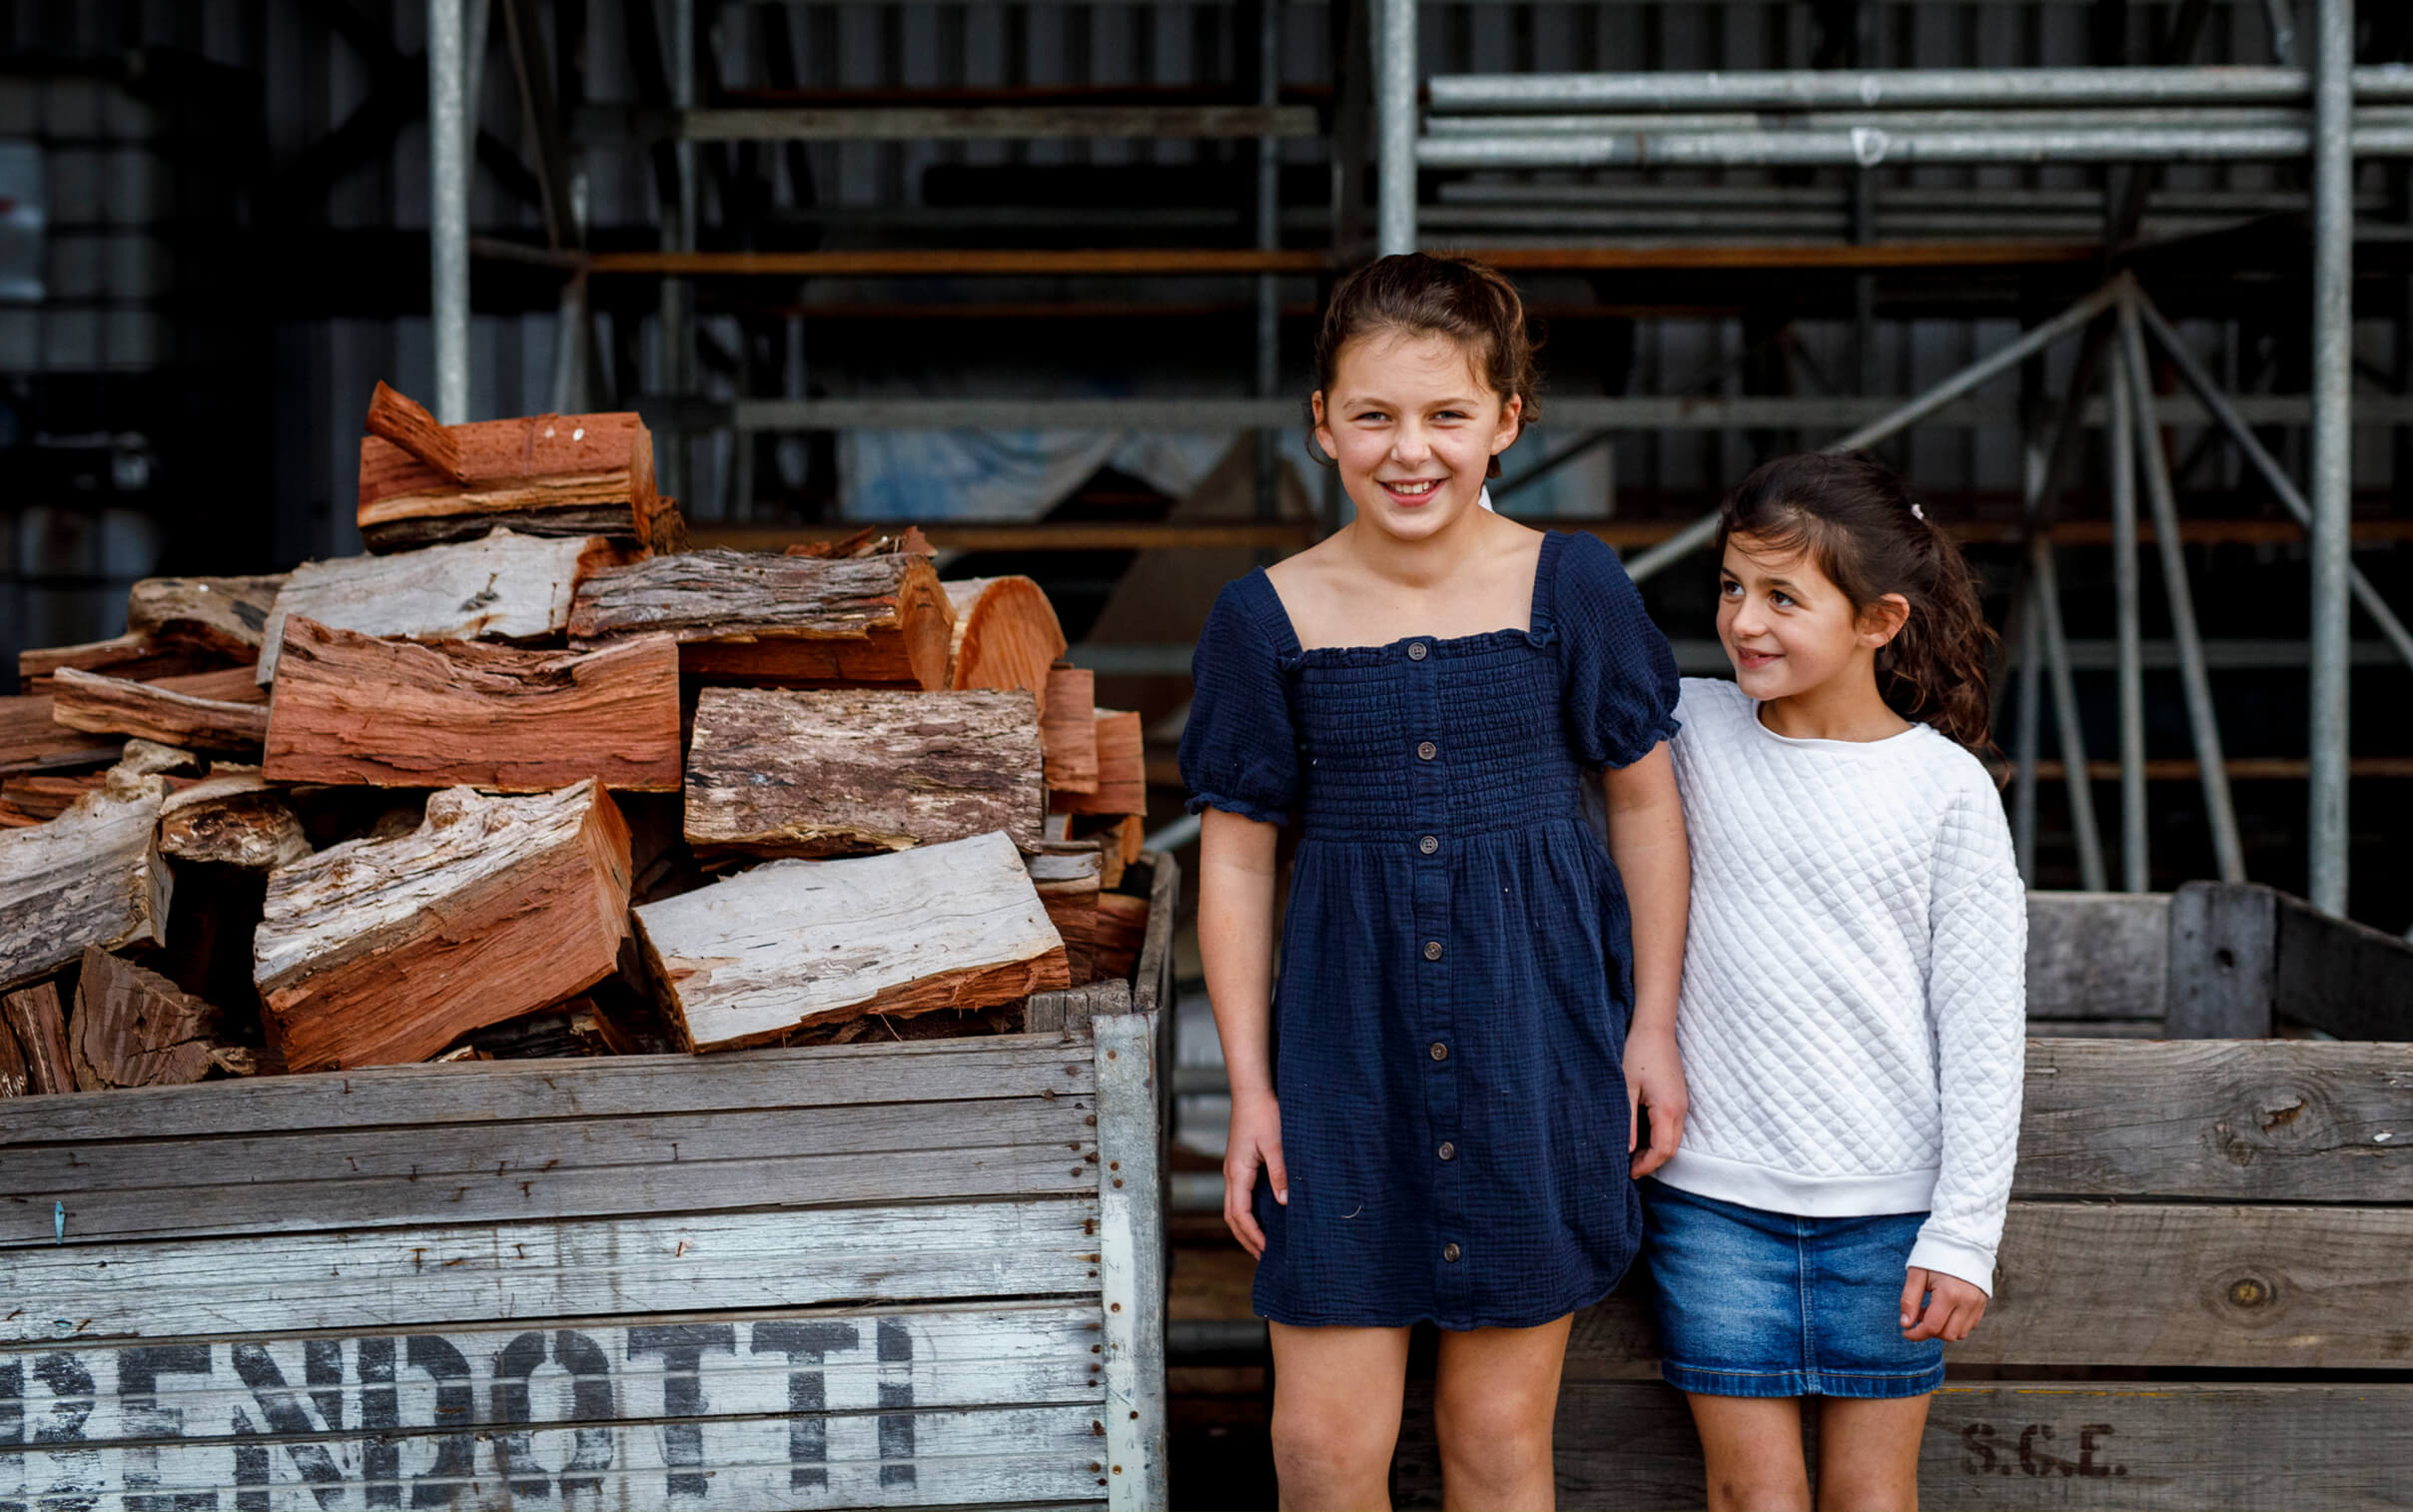 Two young girls stand beside a pile of chopped wood. The younger girl is looking up at the older girl who is laughing..